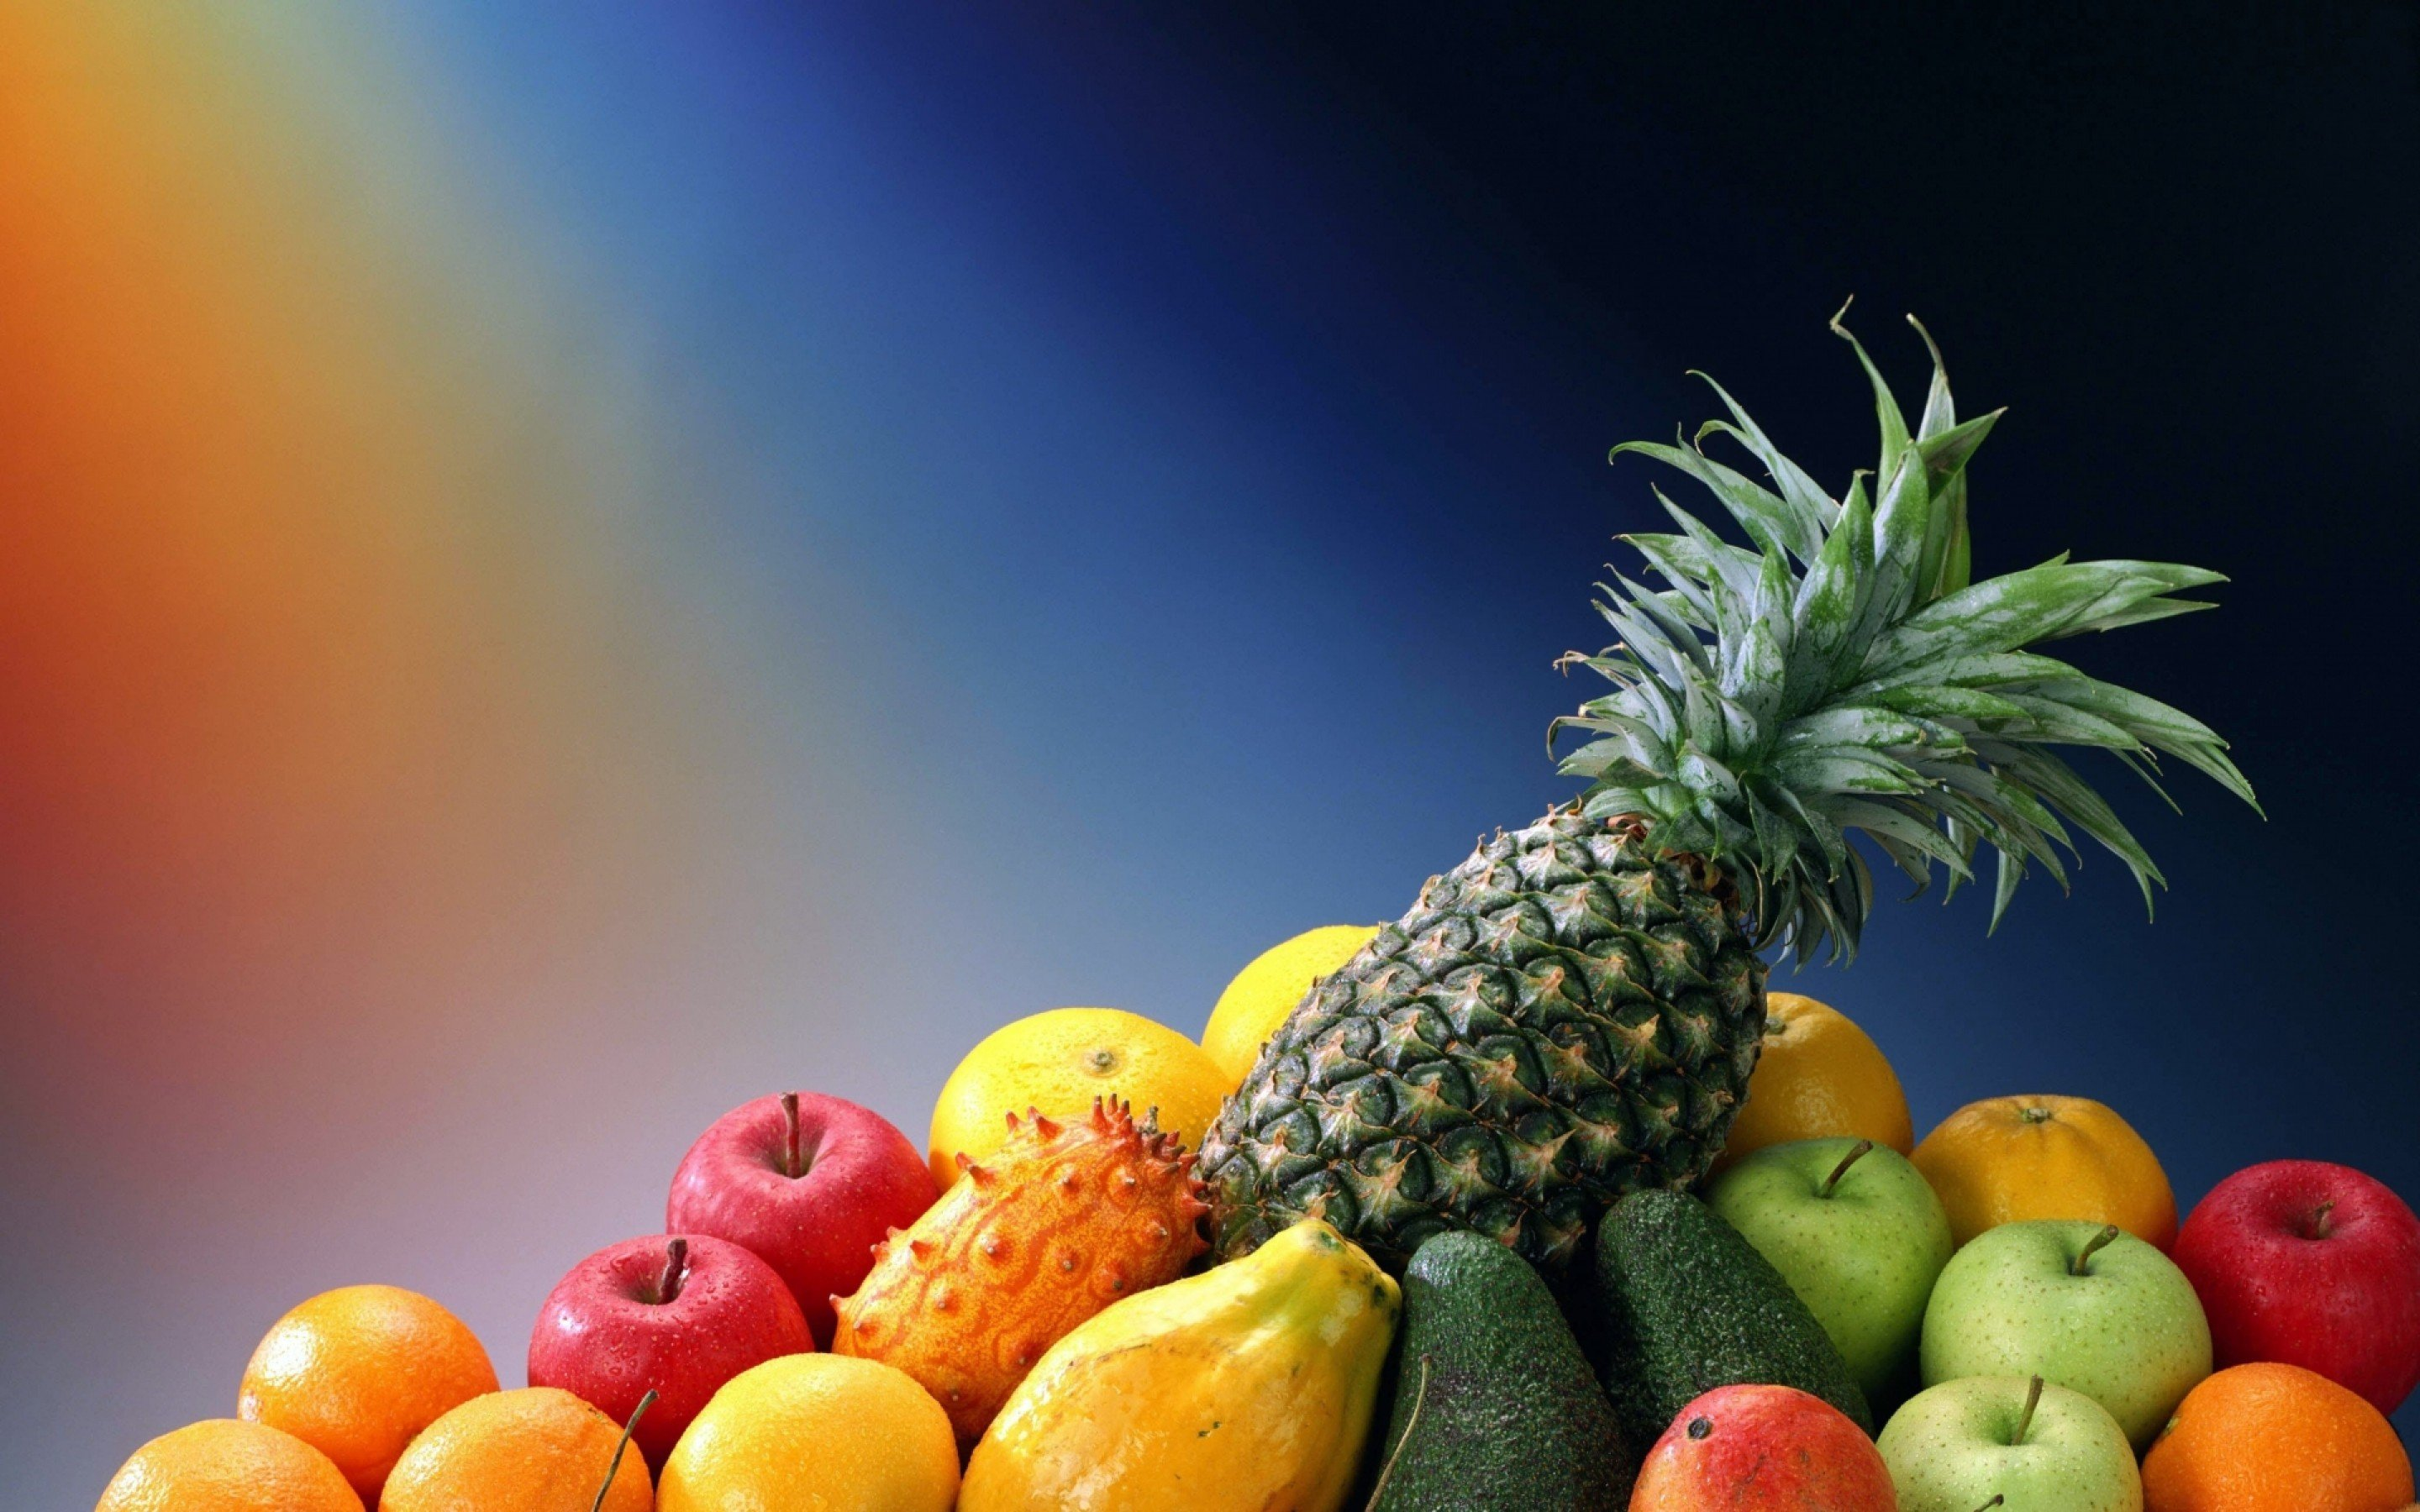 Exotic Fruits HD Wallpaper 2880x1800